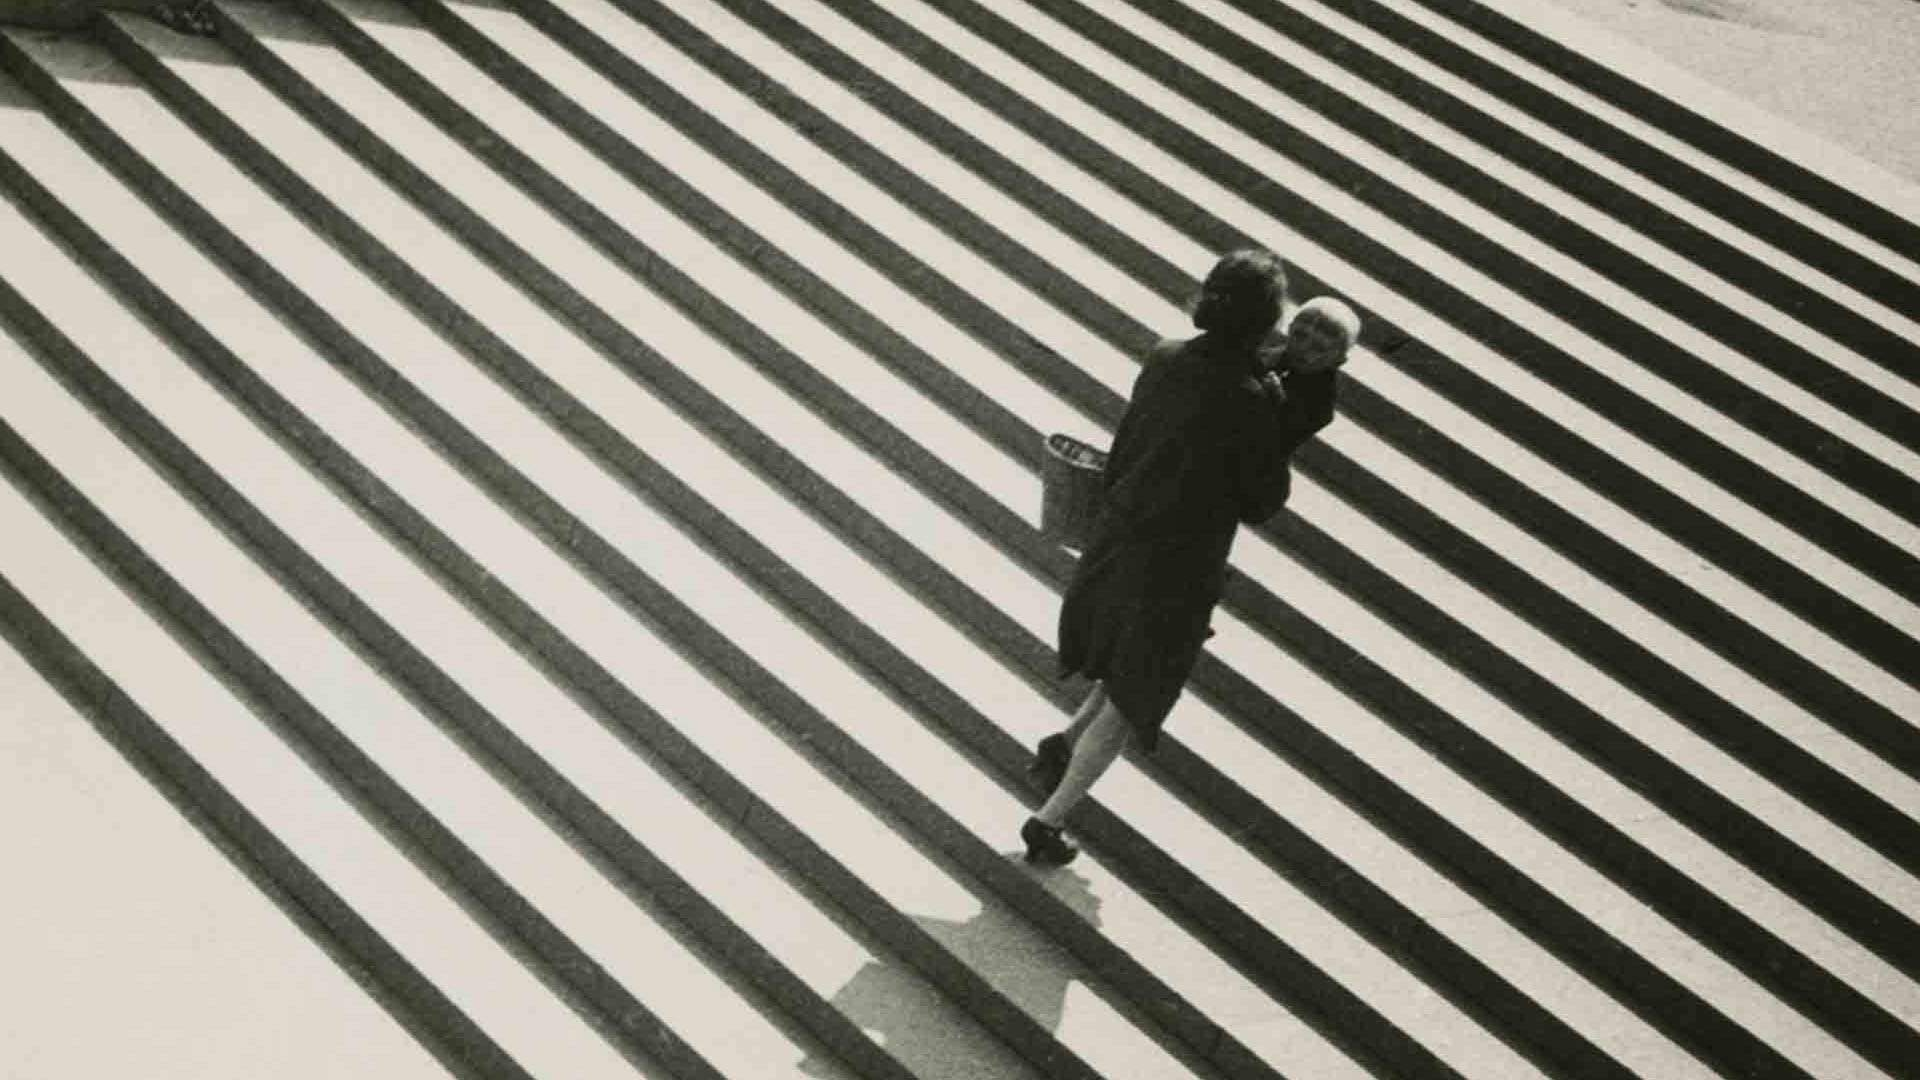 Aleksandr-Rodchenko-Photo_001